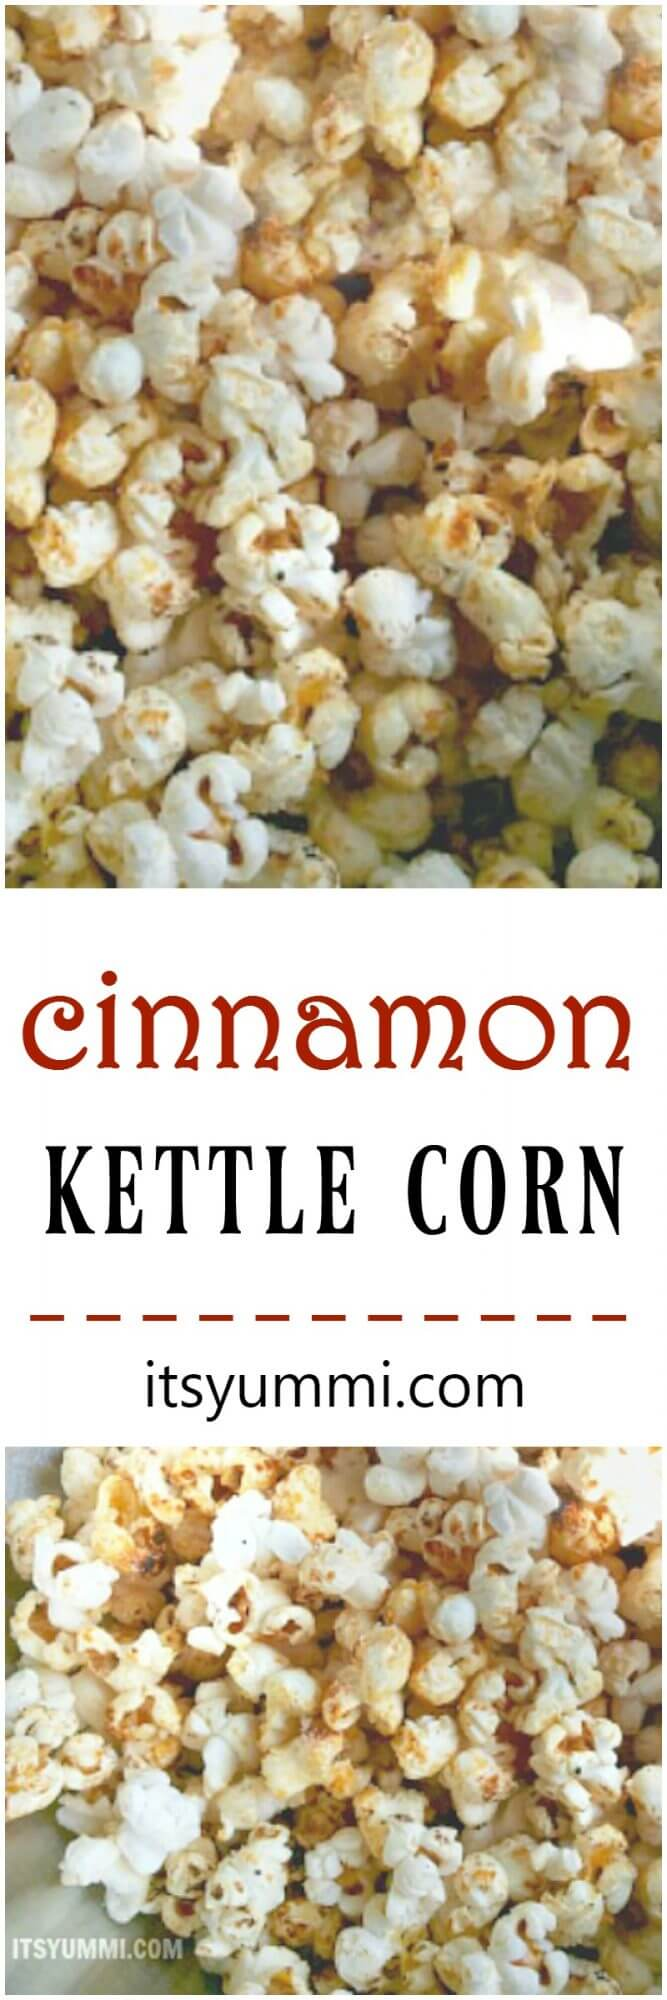 homemade Kettle Corn recipe photo collage